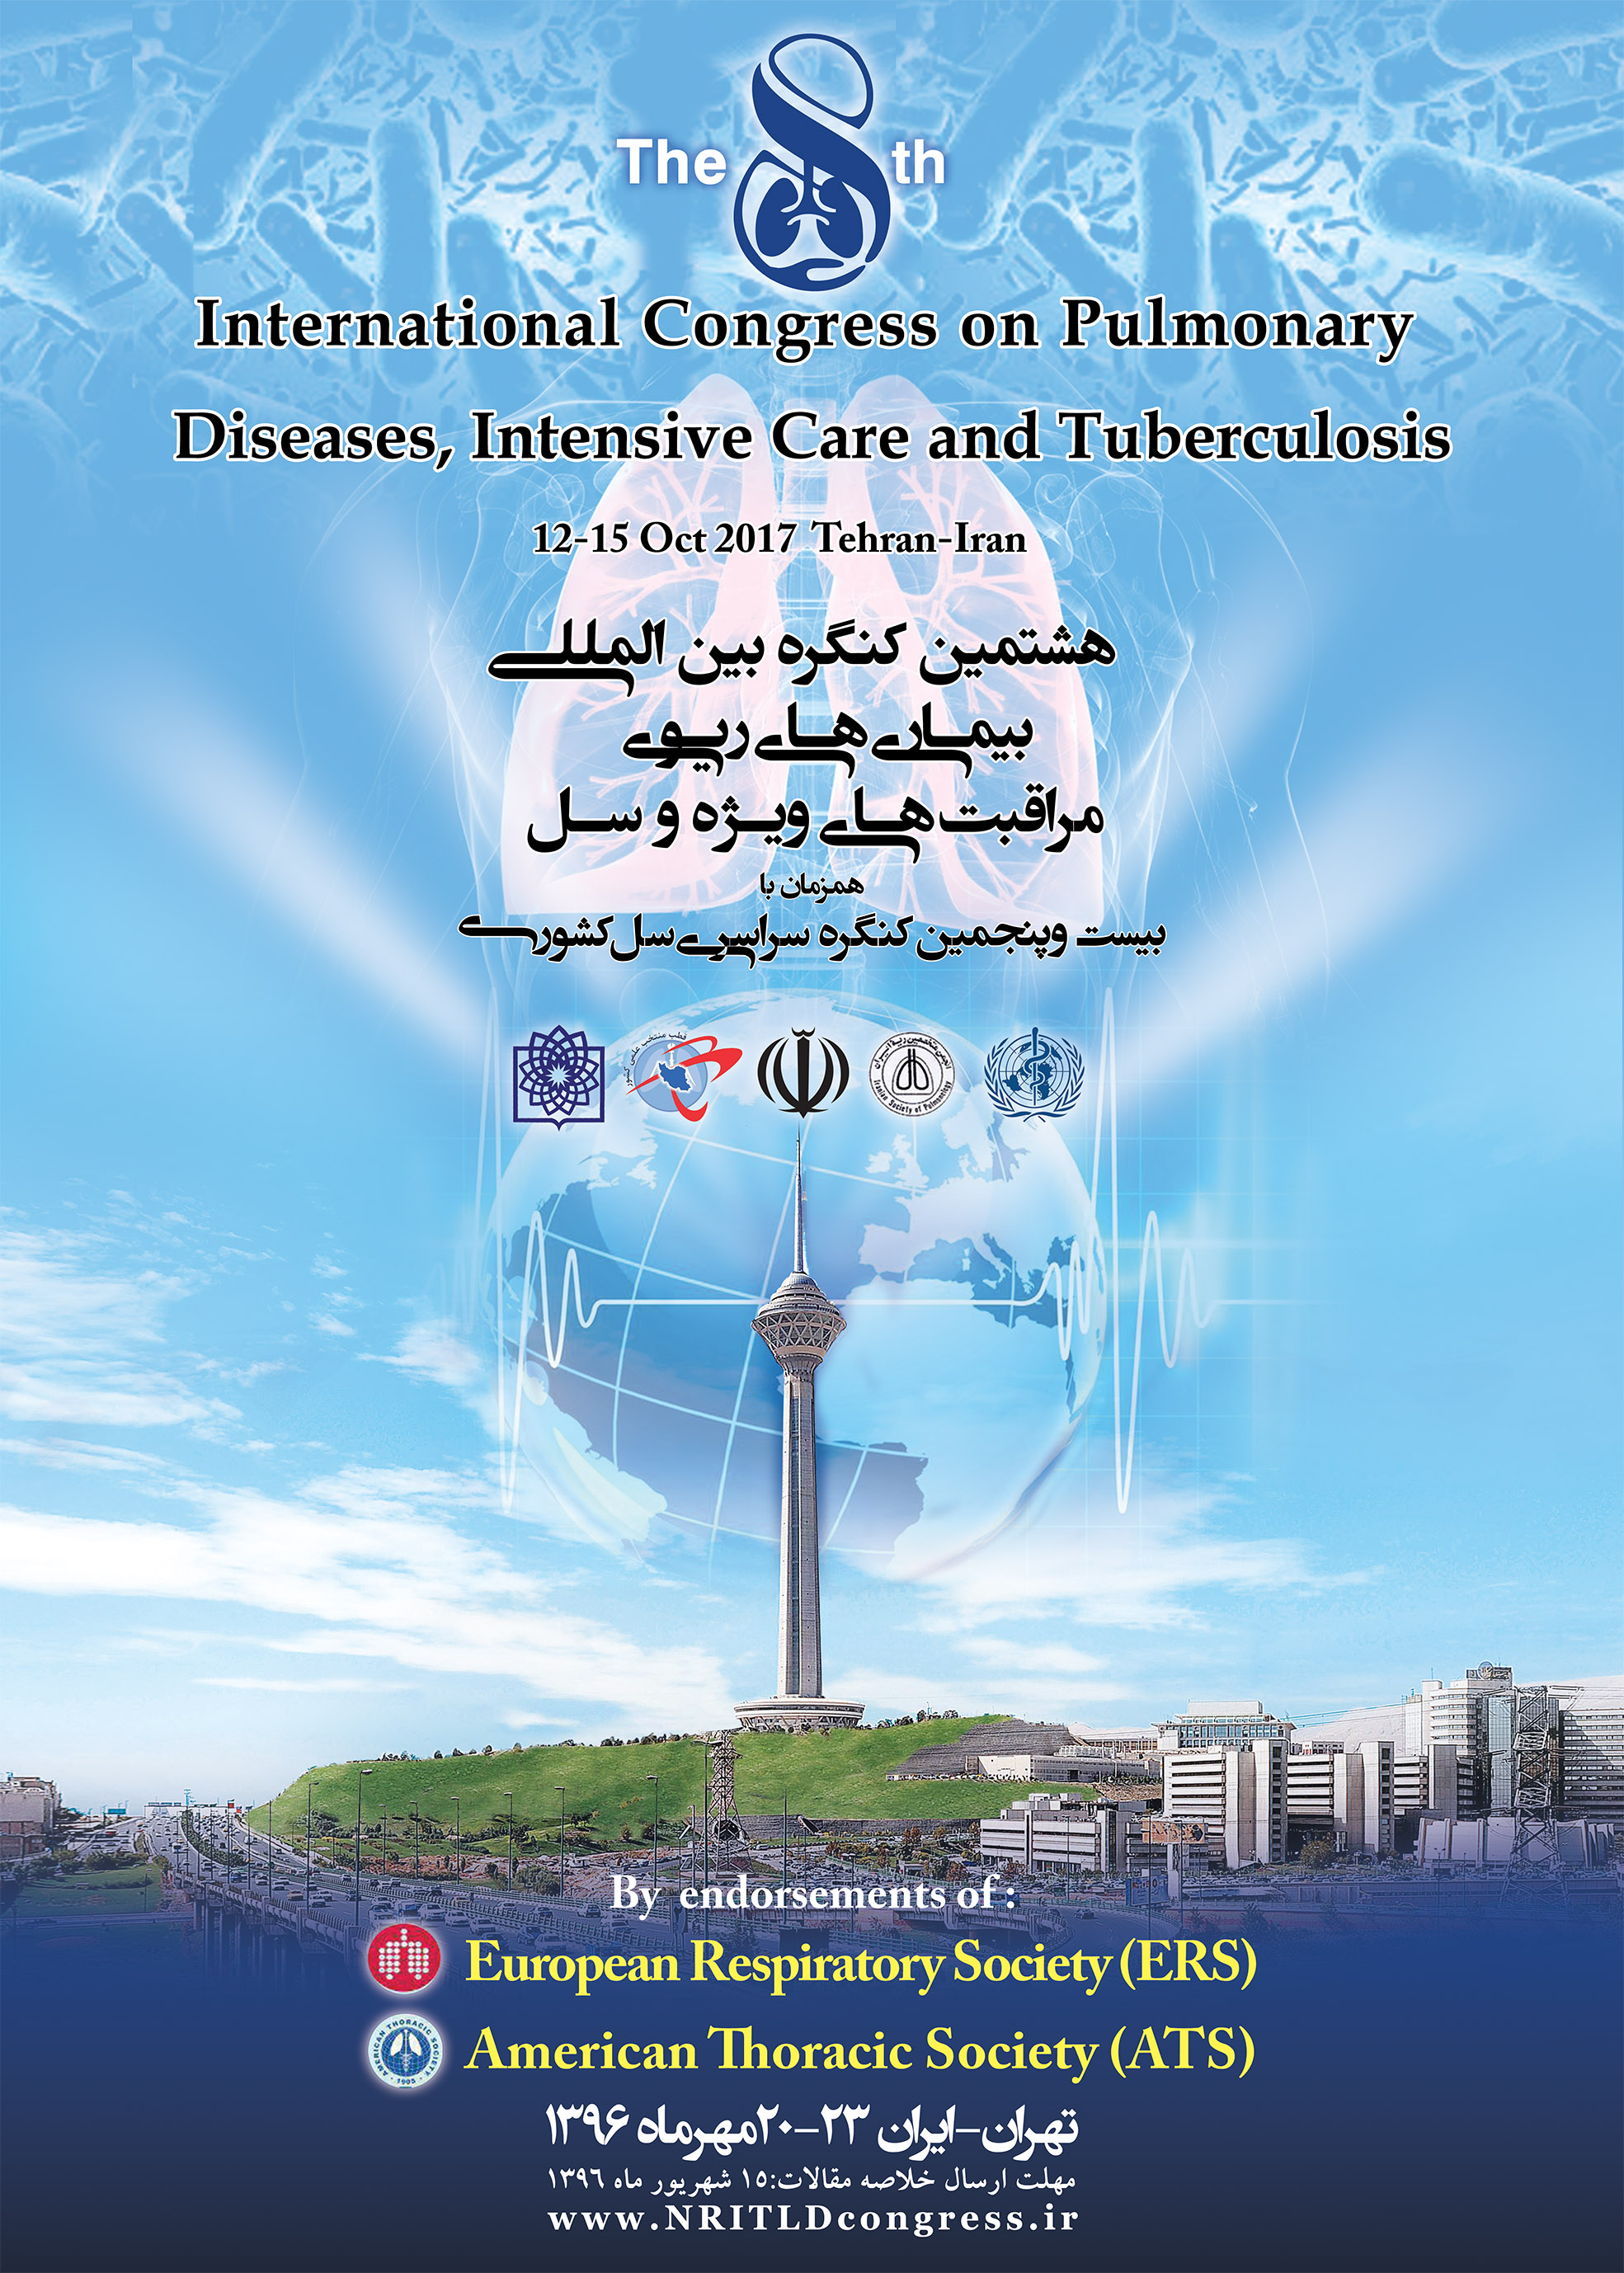 International congress on pulmonary diseases,intensive care and tuberculosis